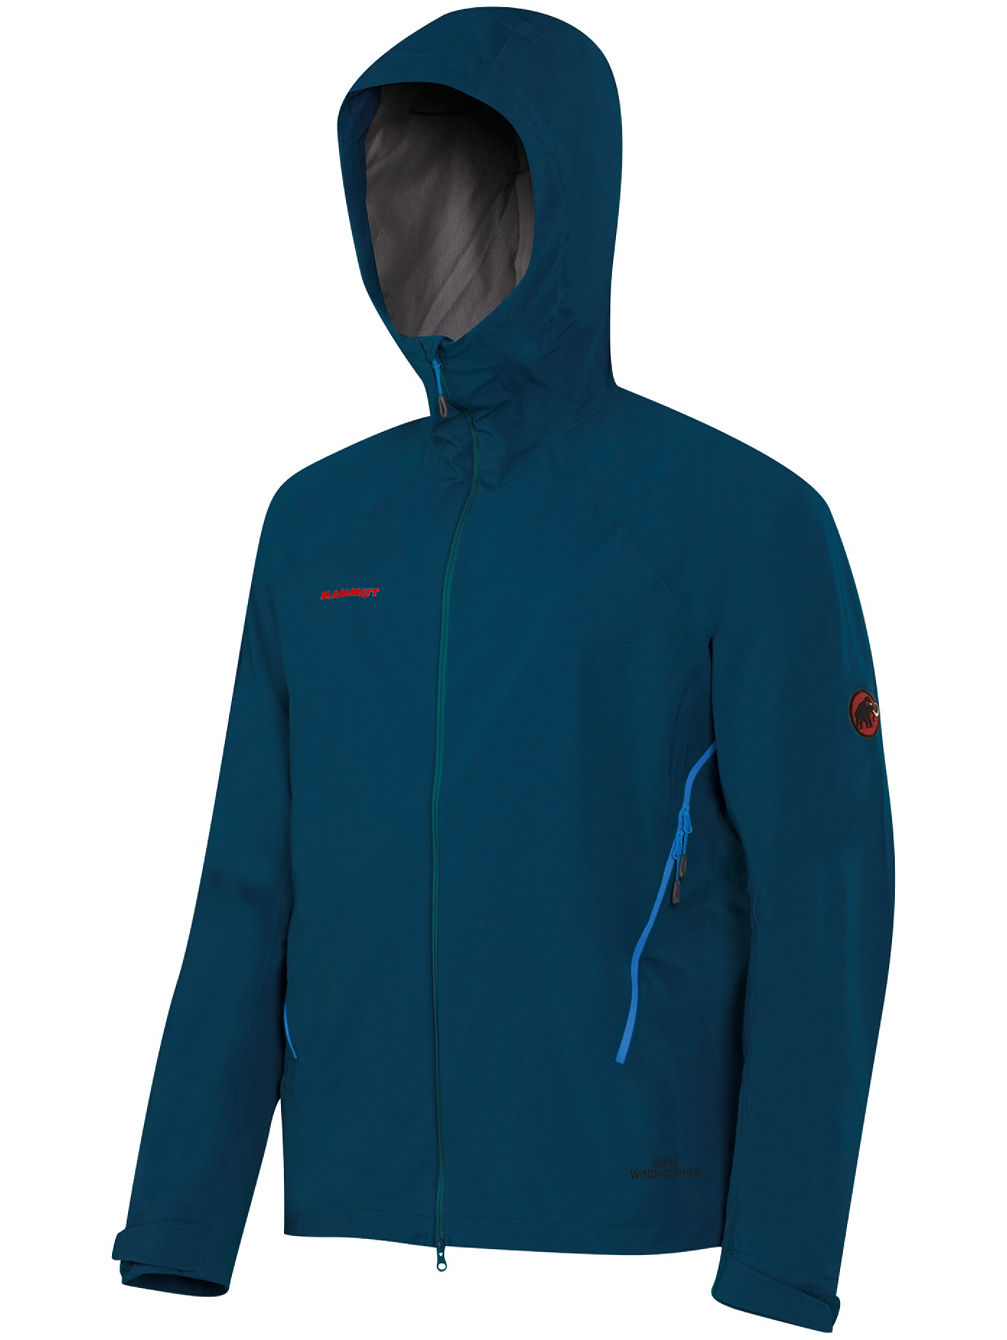 Ultimate Alpine So Softshell